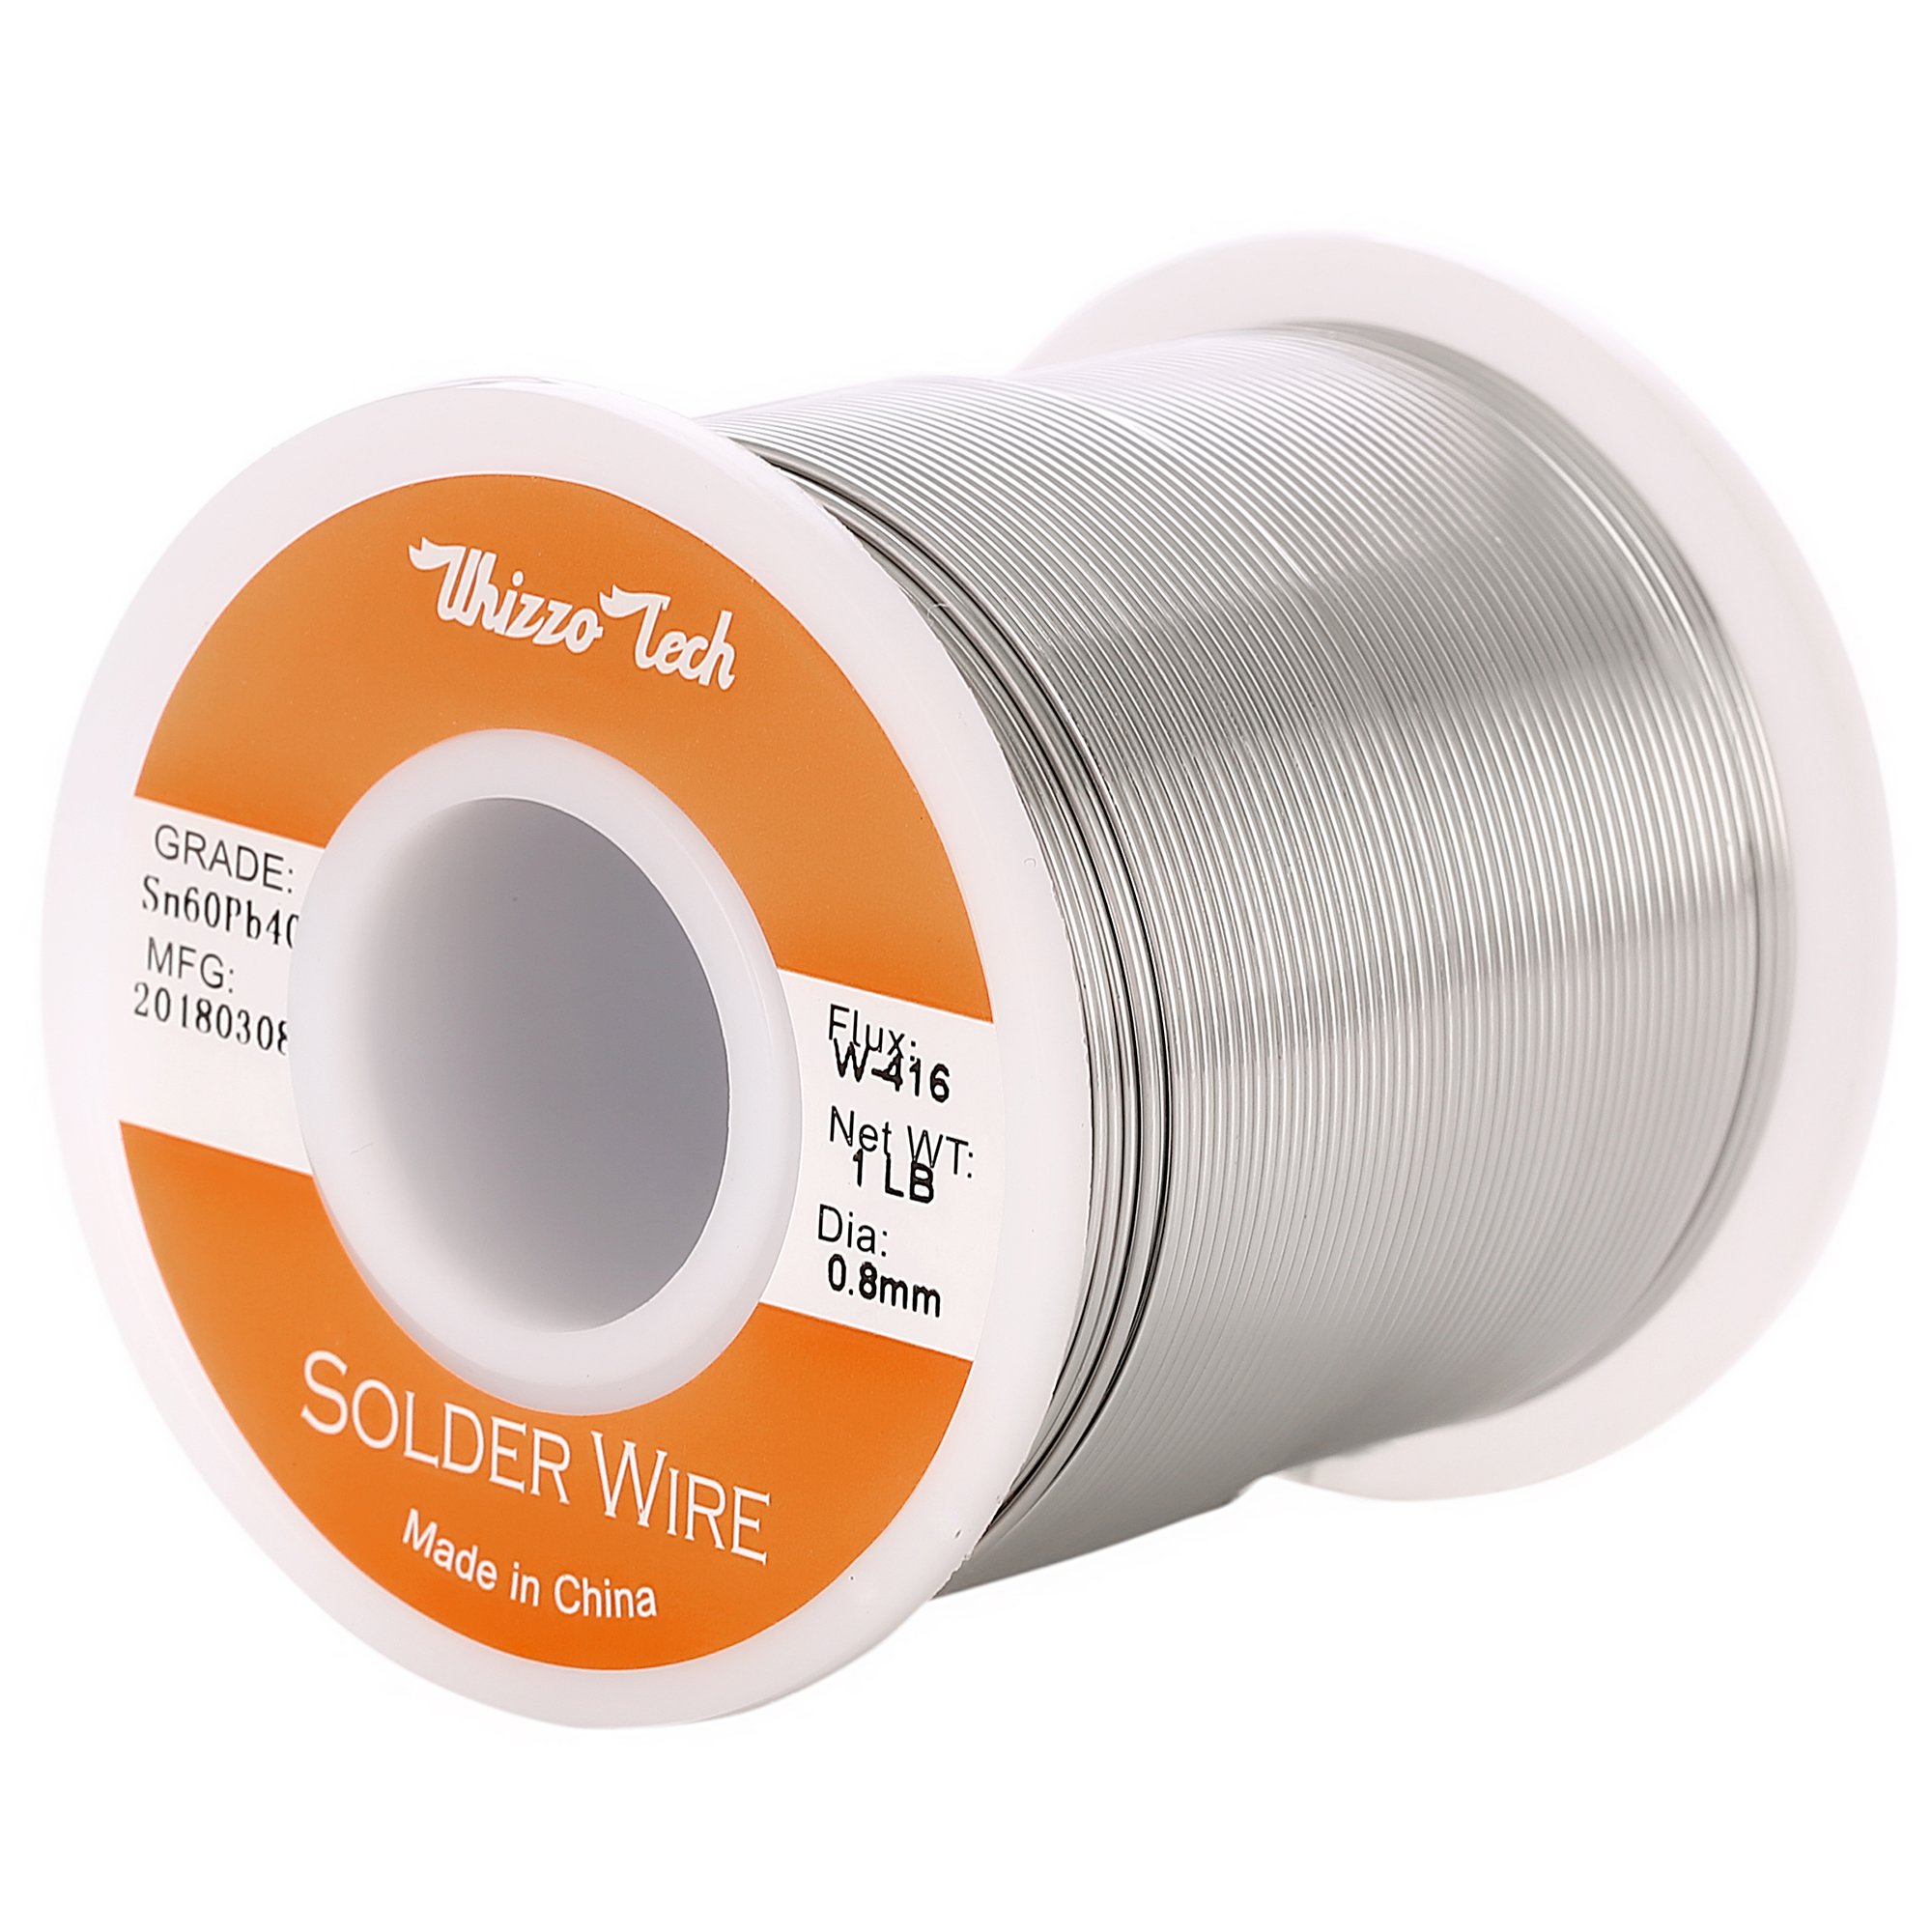 Whizzotech Solder Wire 60/40 Tin/Lead Sn60Pb40 with Flux Rosin Core for Electrical Soldering Diameter 0.032 Inch Weight 1LB